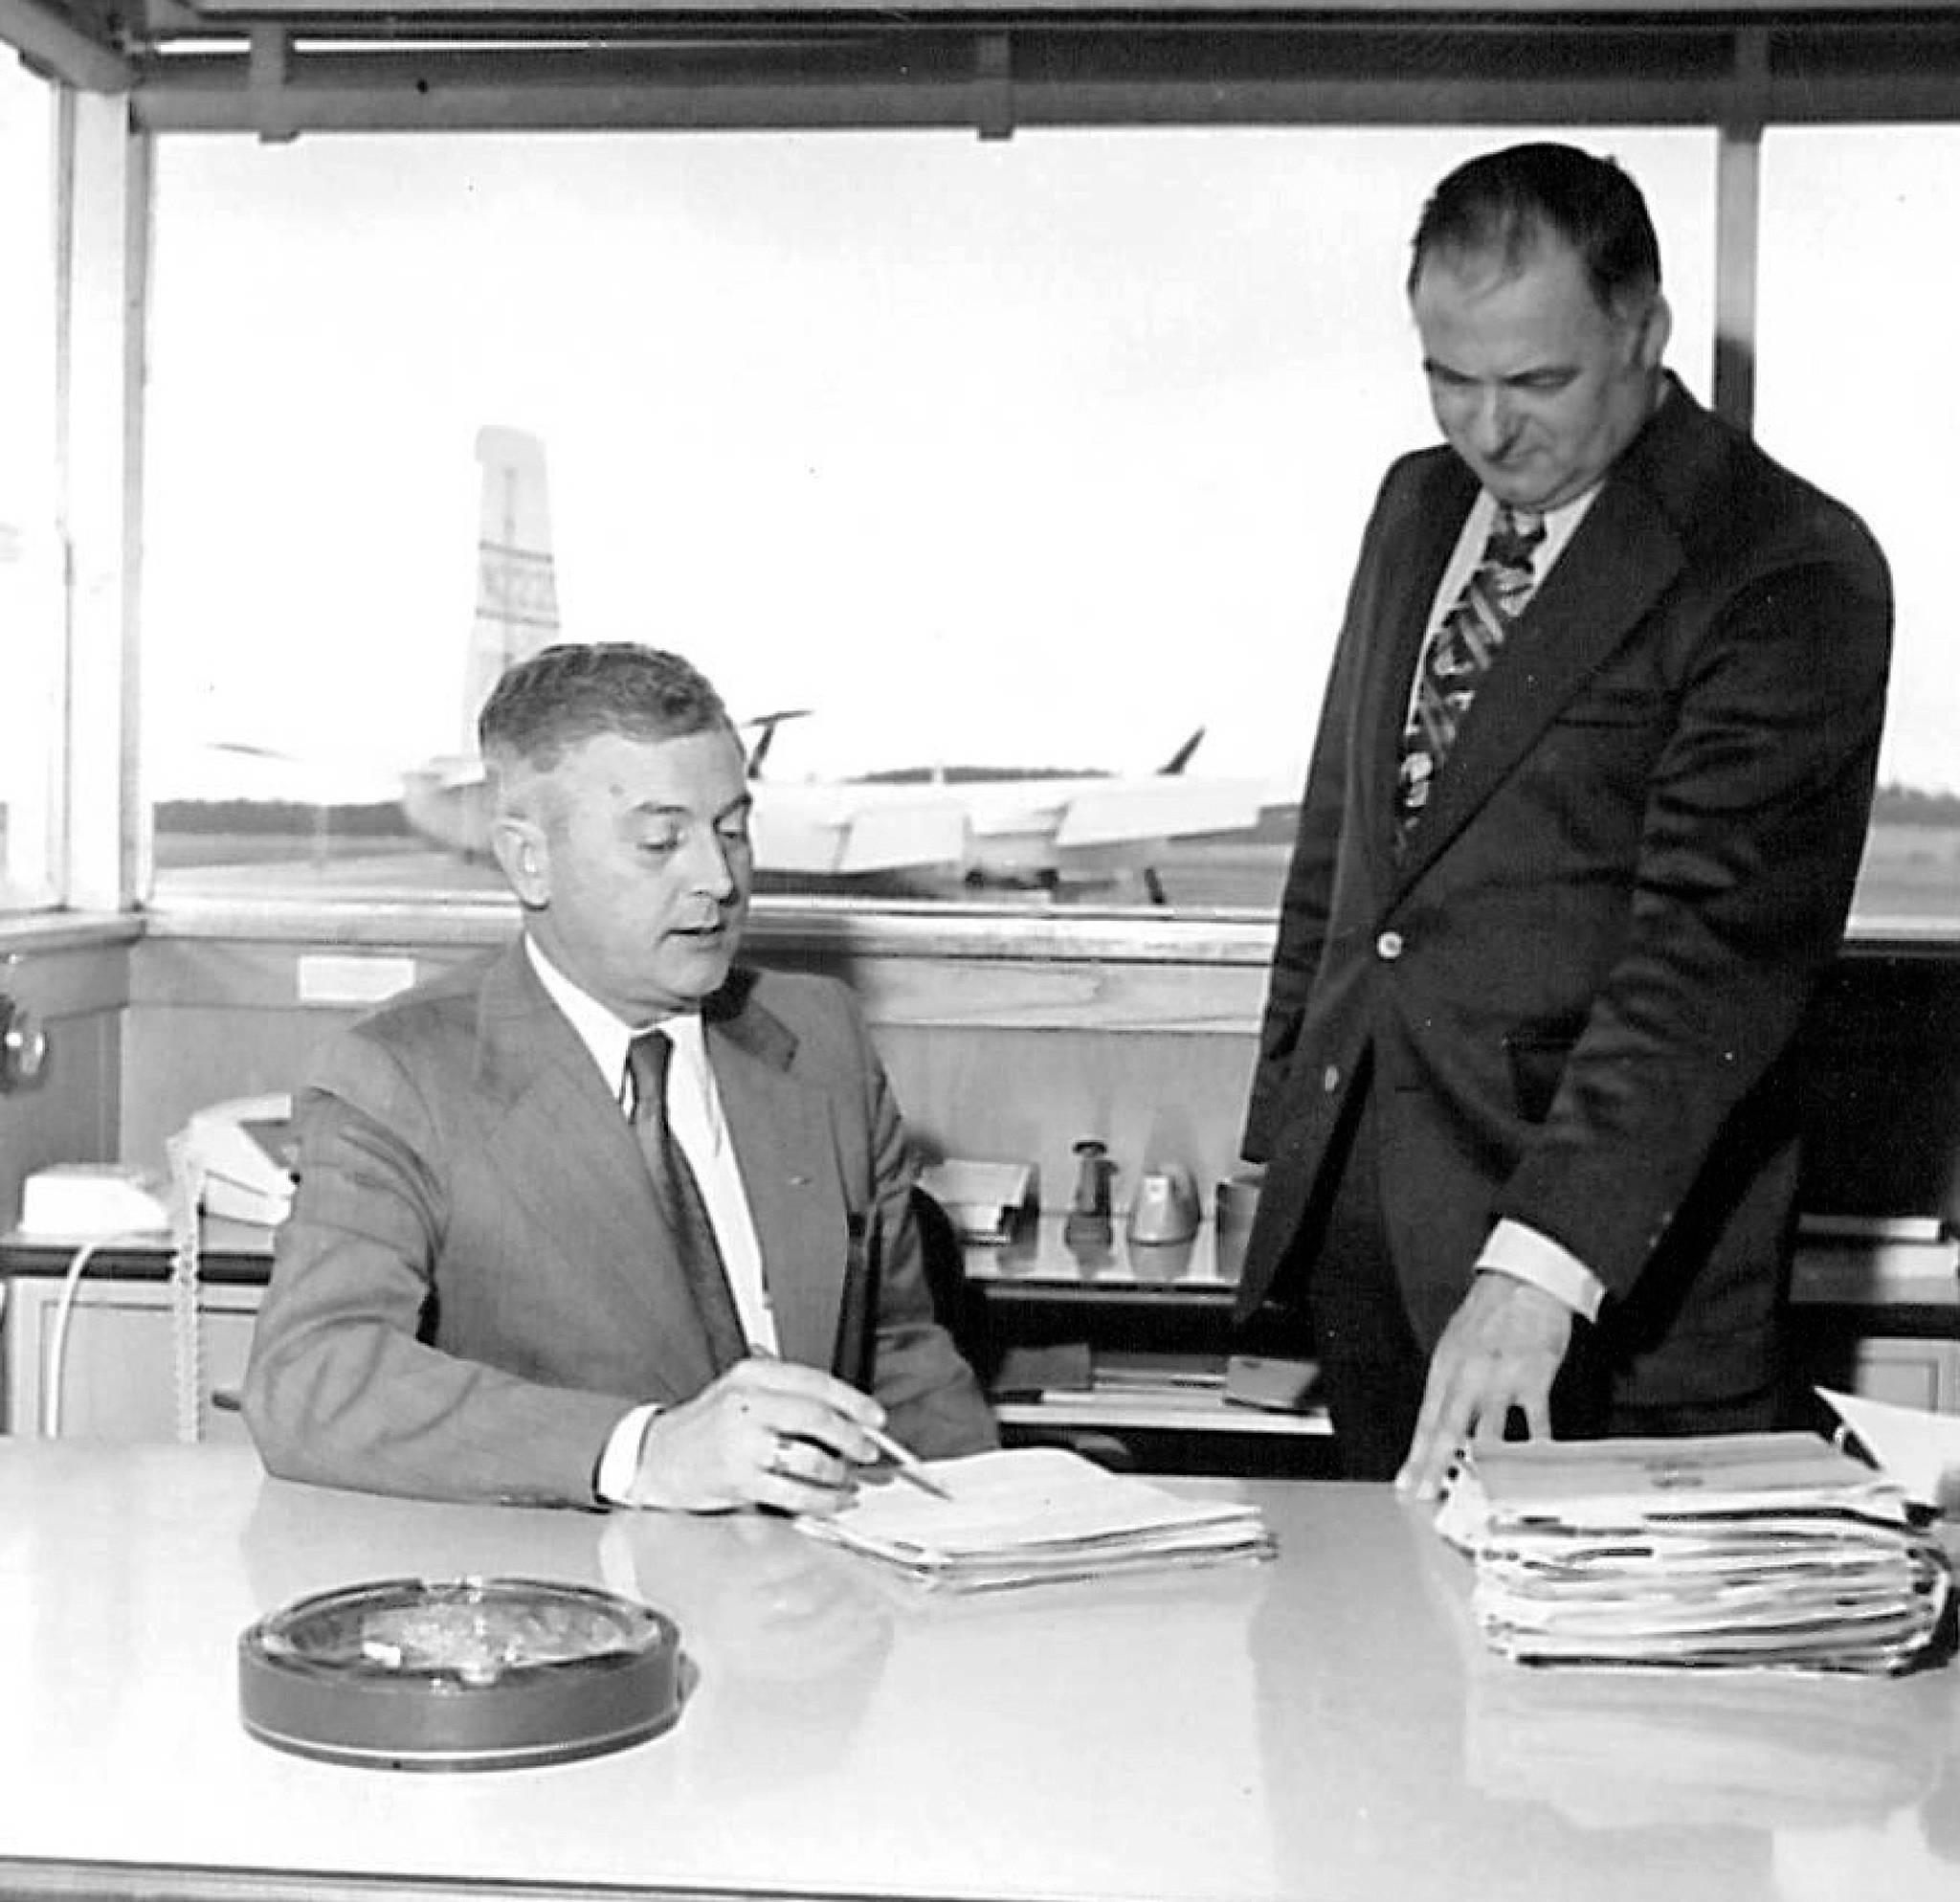 """Airport director George Petrie (left)and Don Bakken, a member of the Snohomish County Airport Commission, at Paine Field. Robert Best, Everett Herald publisher, and Petrie pitched the airport to Boeing president Bill Allen, who interrupted them. """"He said they had already optioned about 700 acres. Bob and I looked at each other in amazement,"""" Petrie told the Herald. """"He had no idea Boeing was thinking that big."""""""